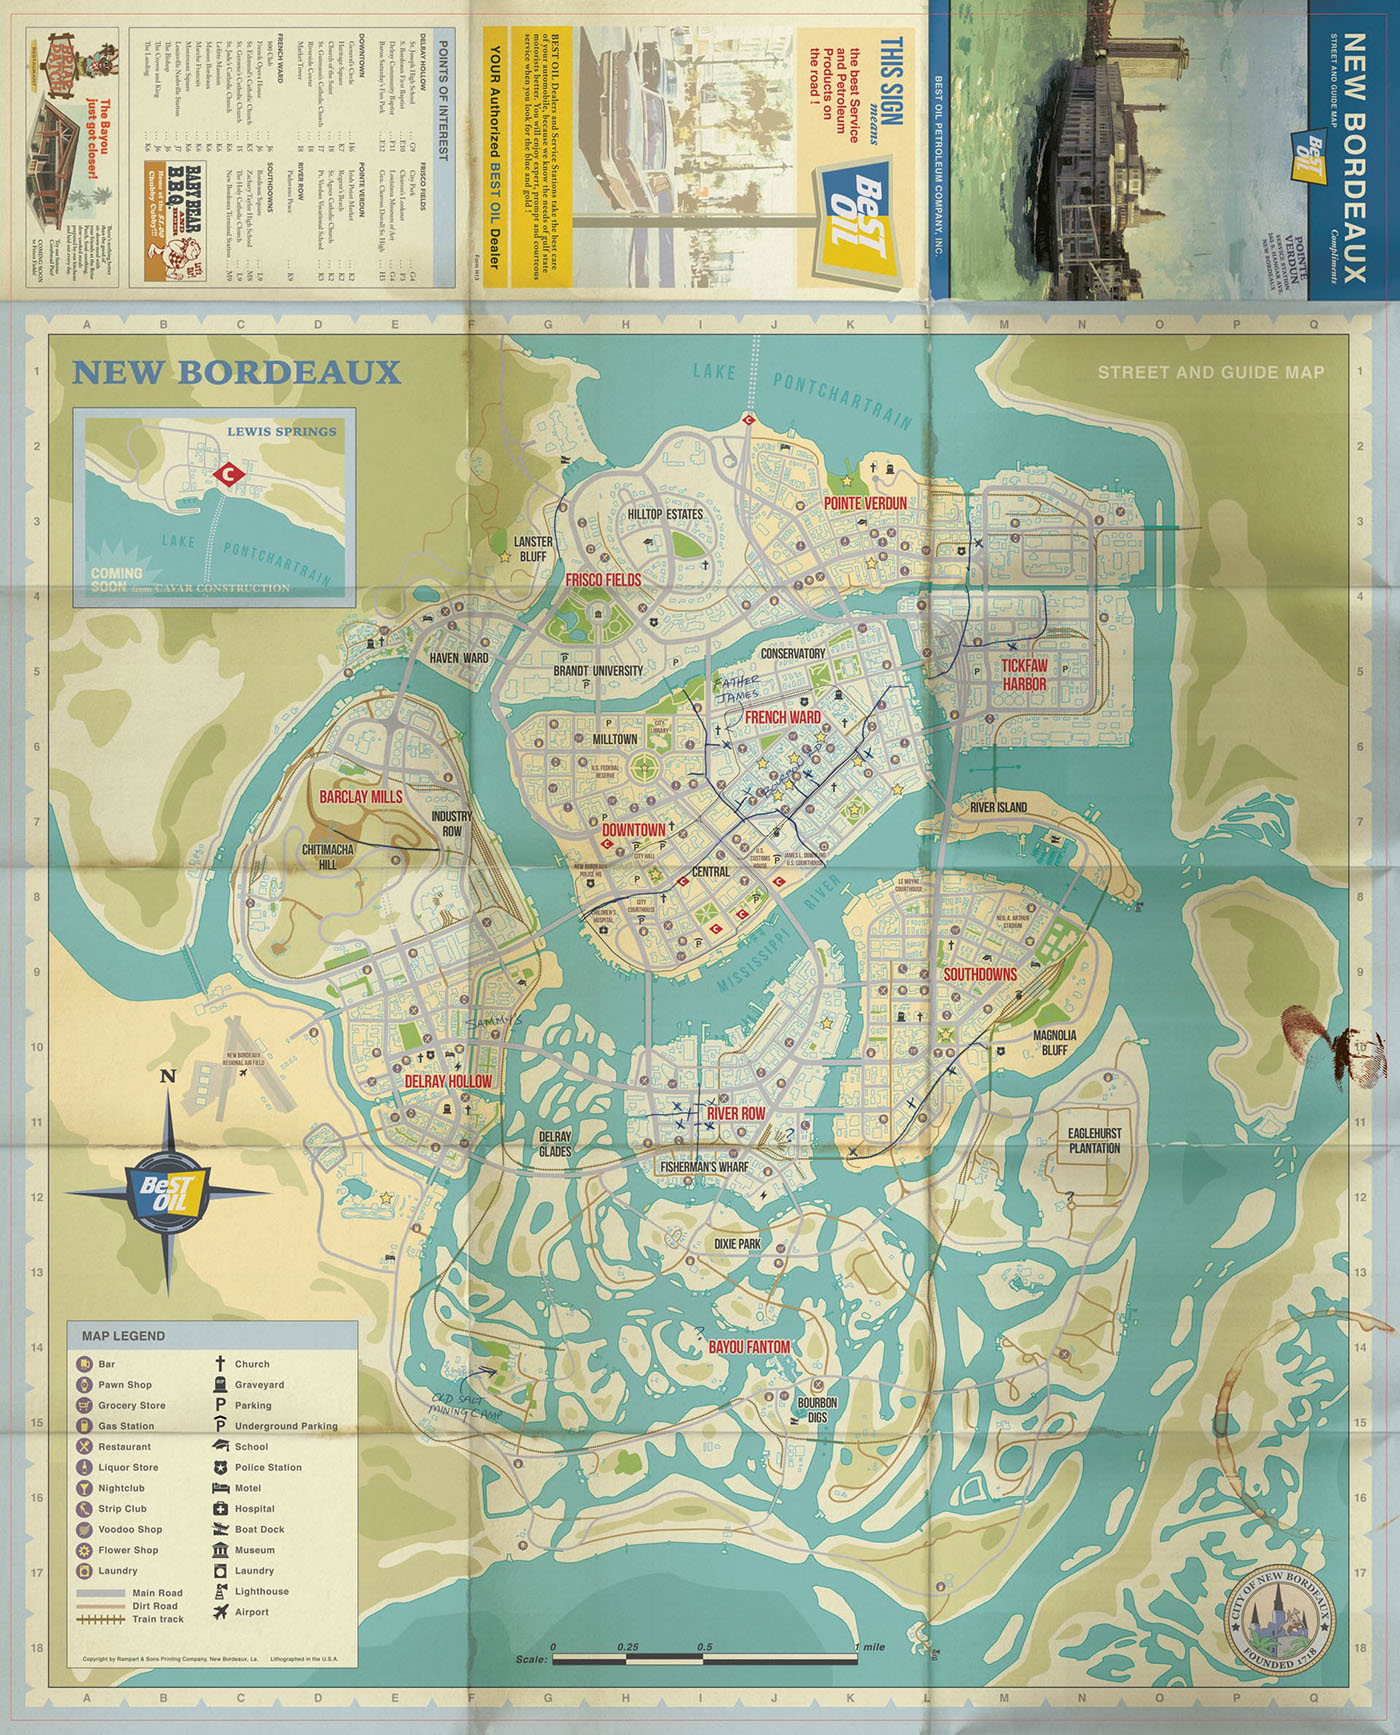 Mafia iii world map on behance semi final world map design for mafia iii exact layouts and folds were based on established print templates for xbox one ps4 and pc box sizes gumiabroncs